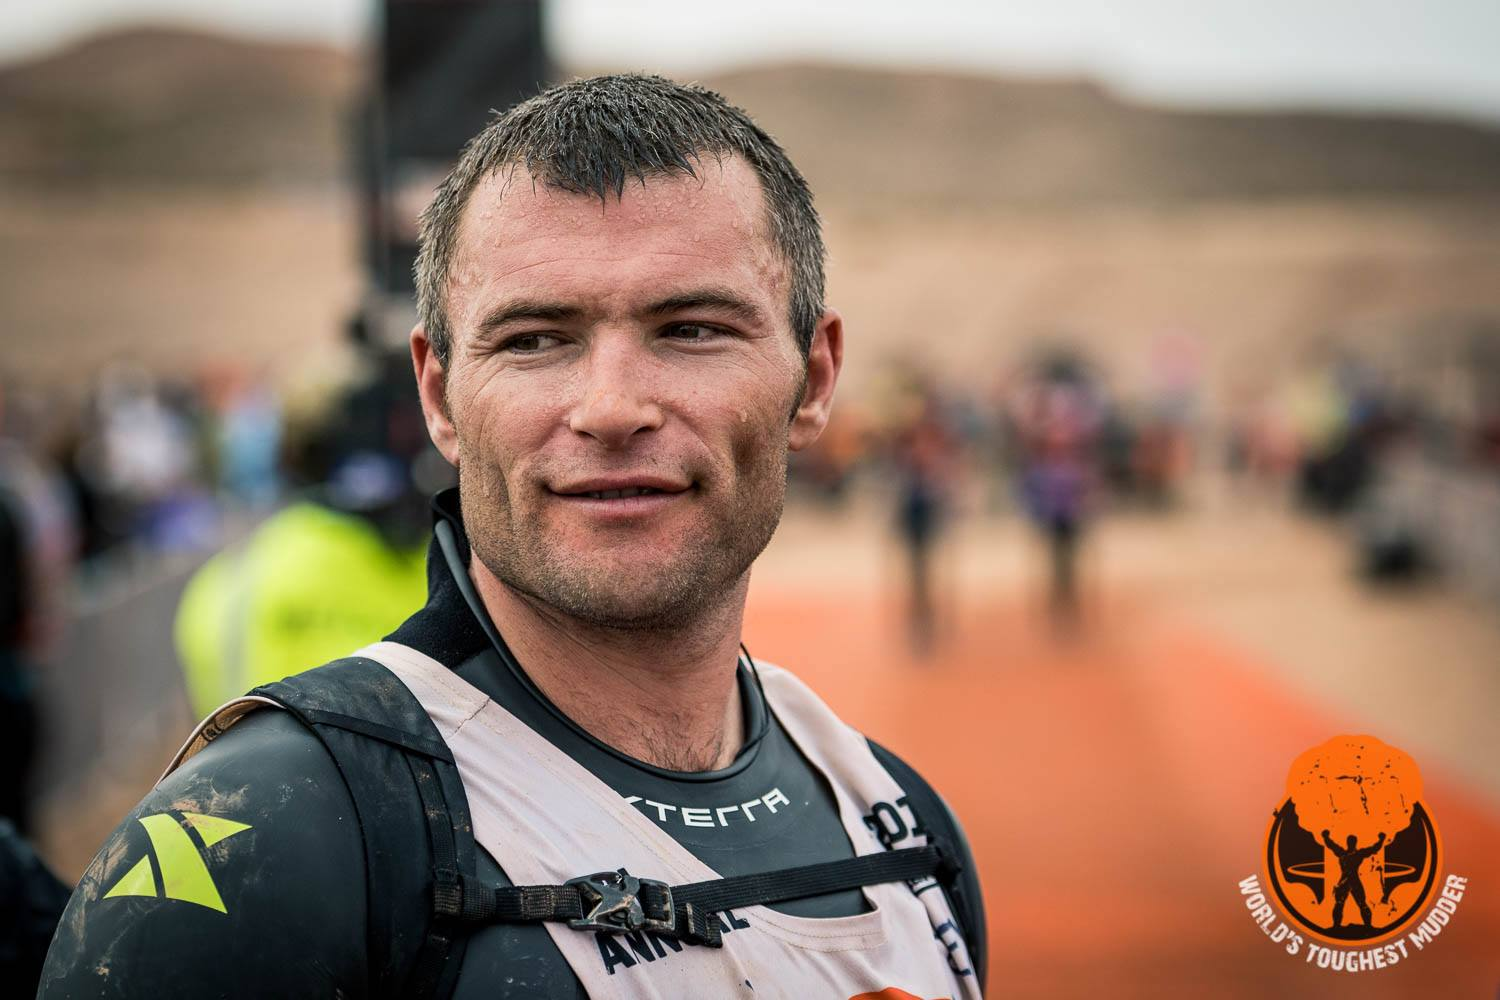 Ambassador Jason Antin World's Toughest Mudder